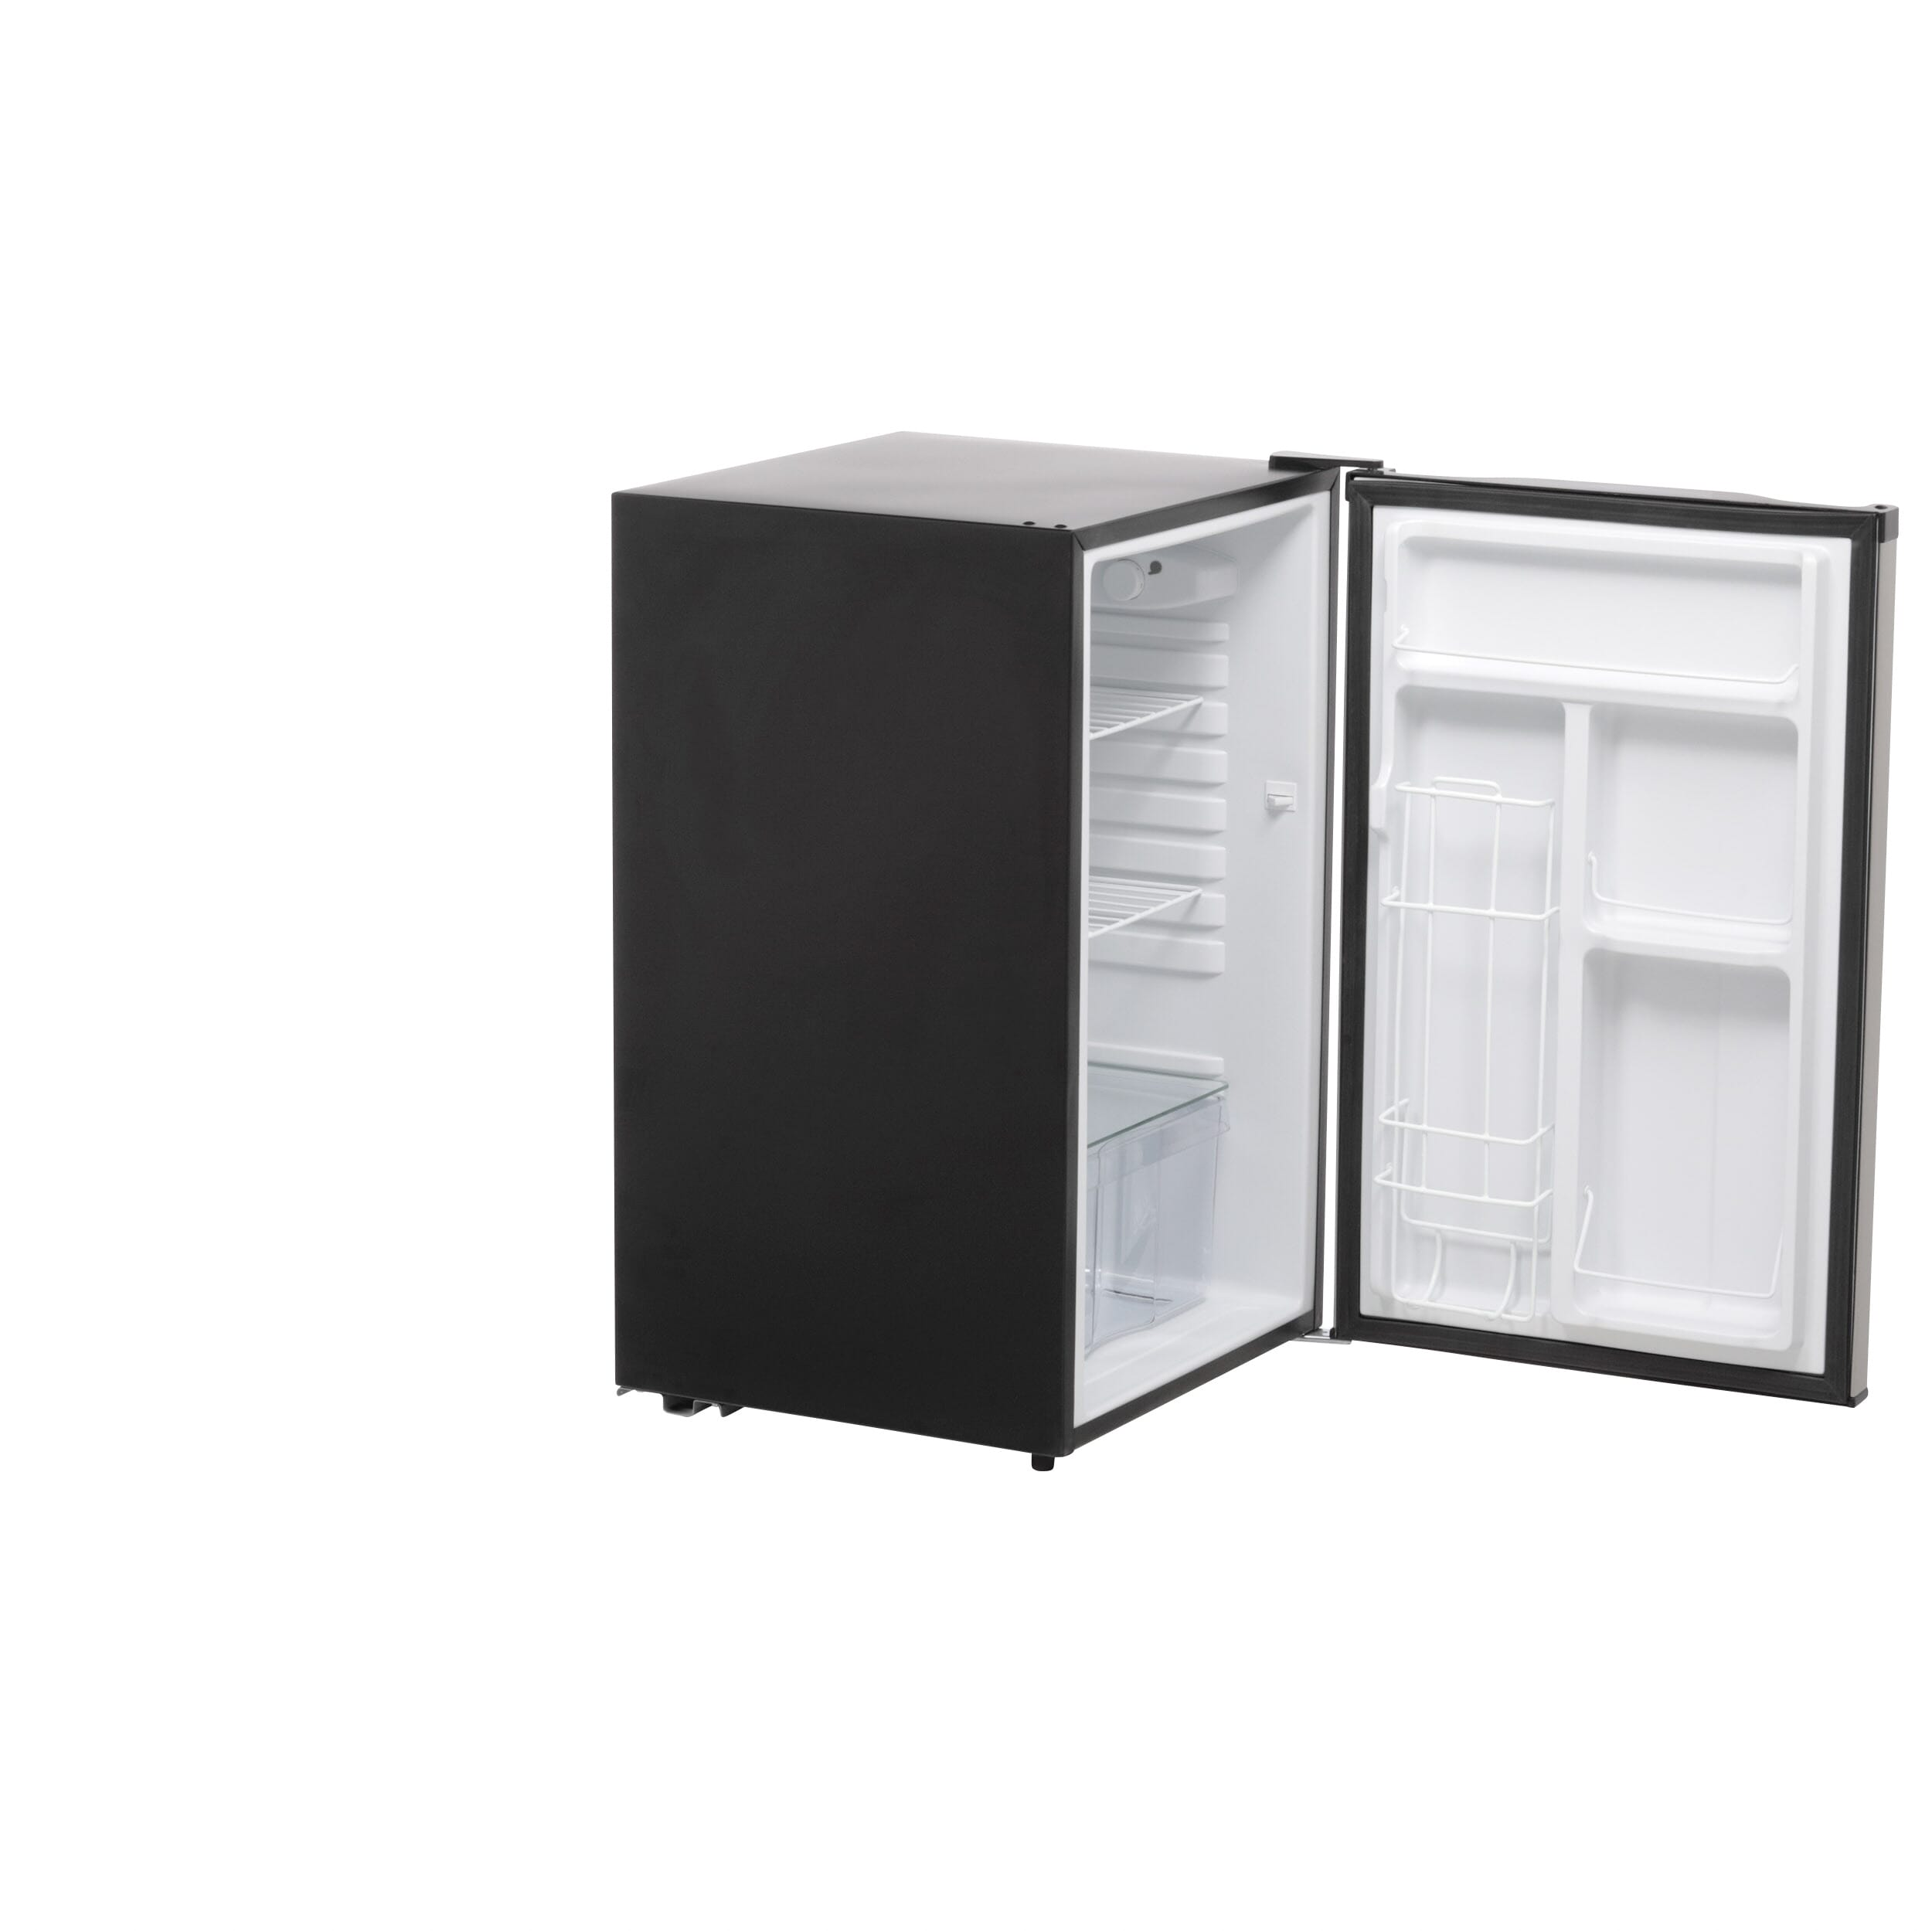 Mini refrigerator outfitted with a beverage dispenser for 12 cans